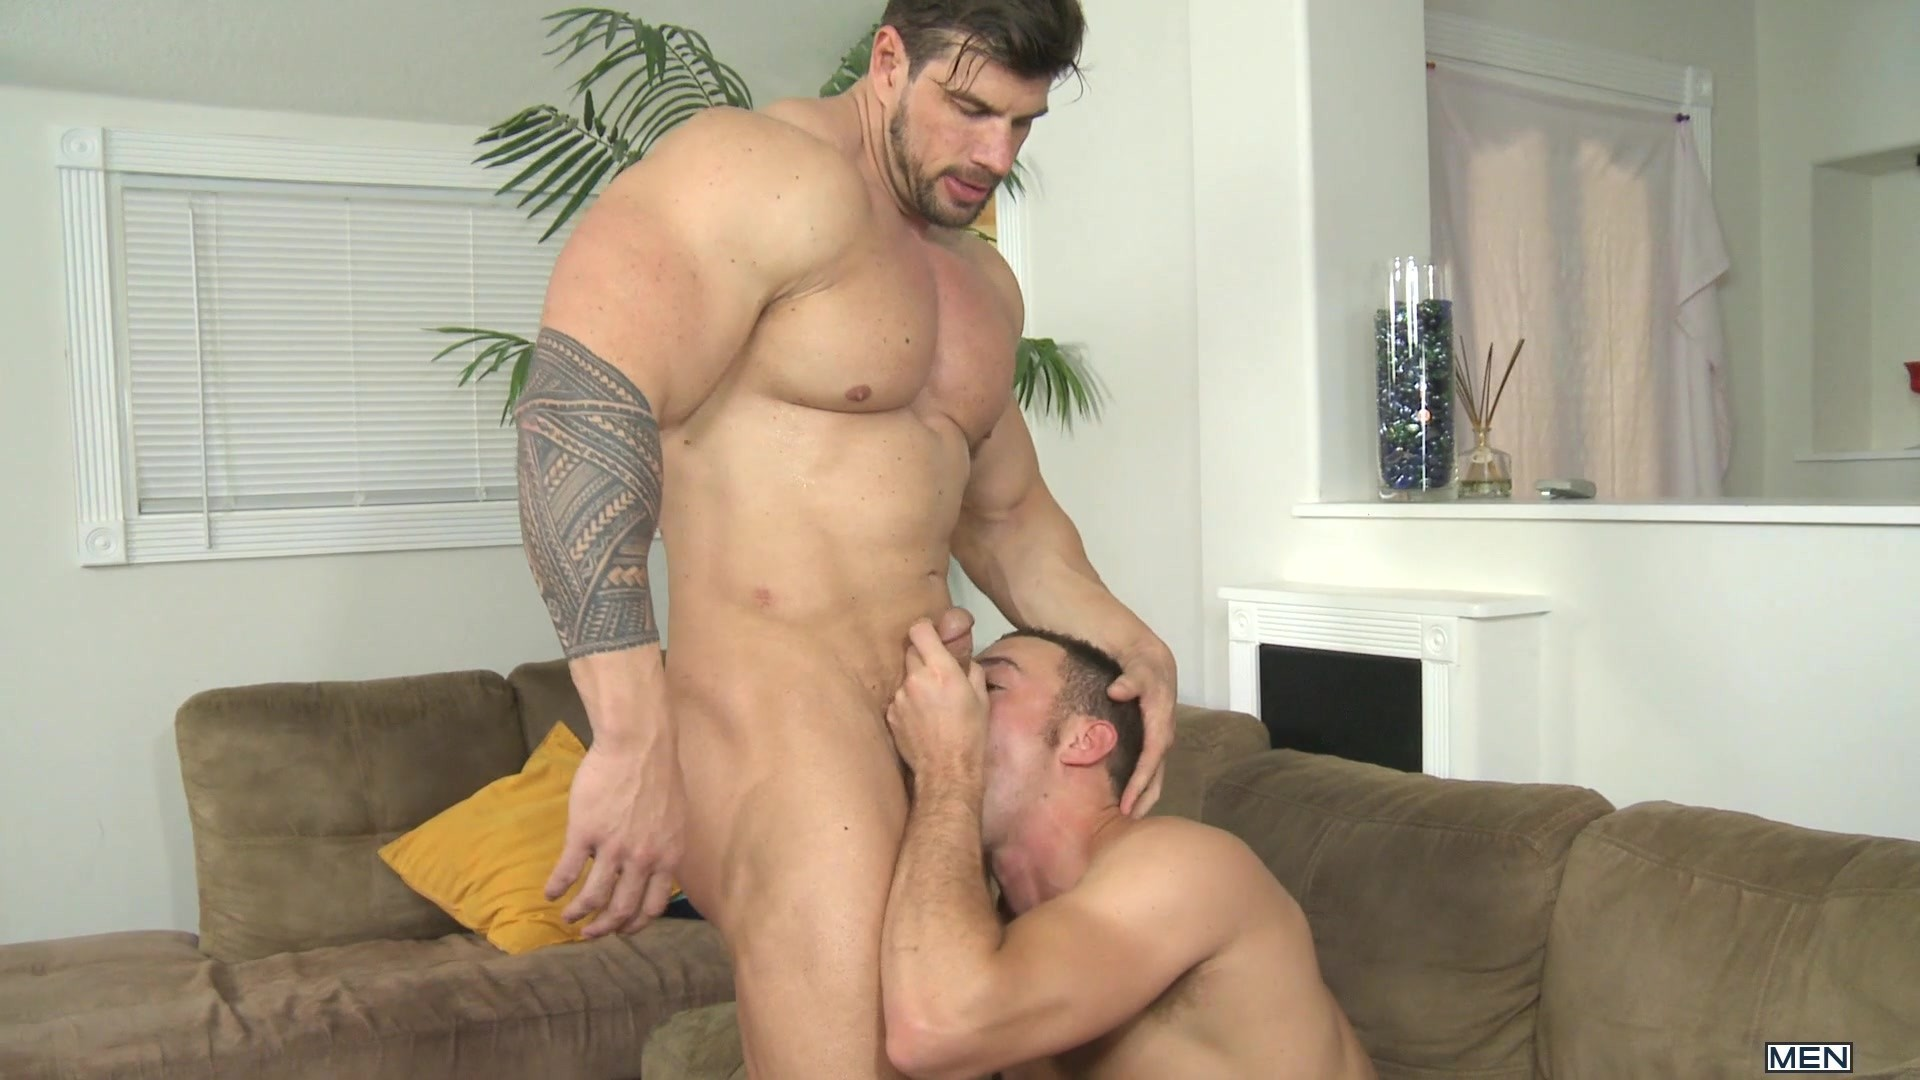 free-zeb-atlas-porn-videos-cerita-sex-mateure-mam-indo